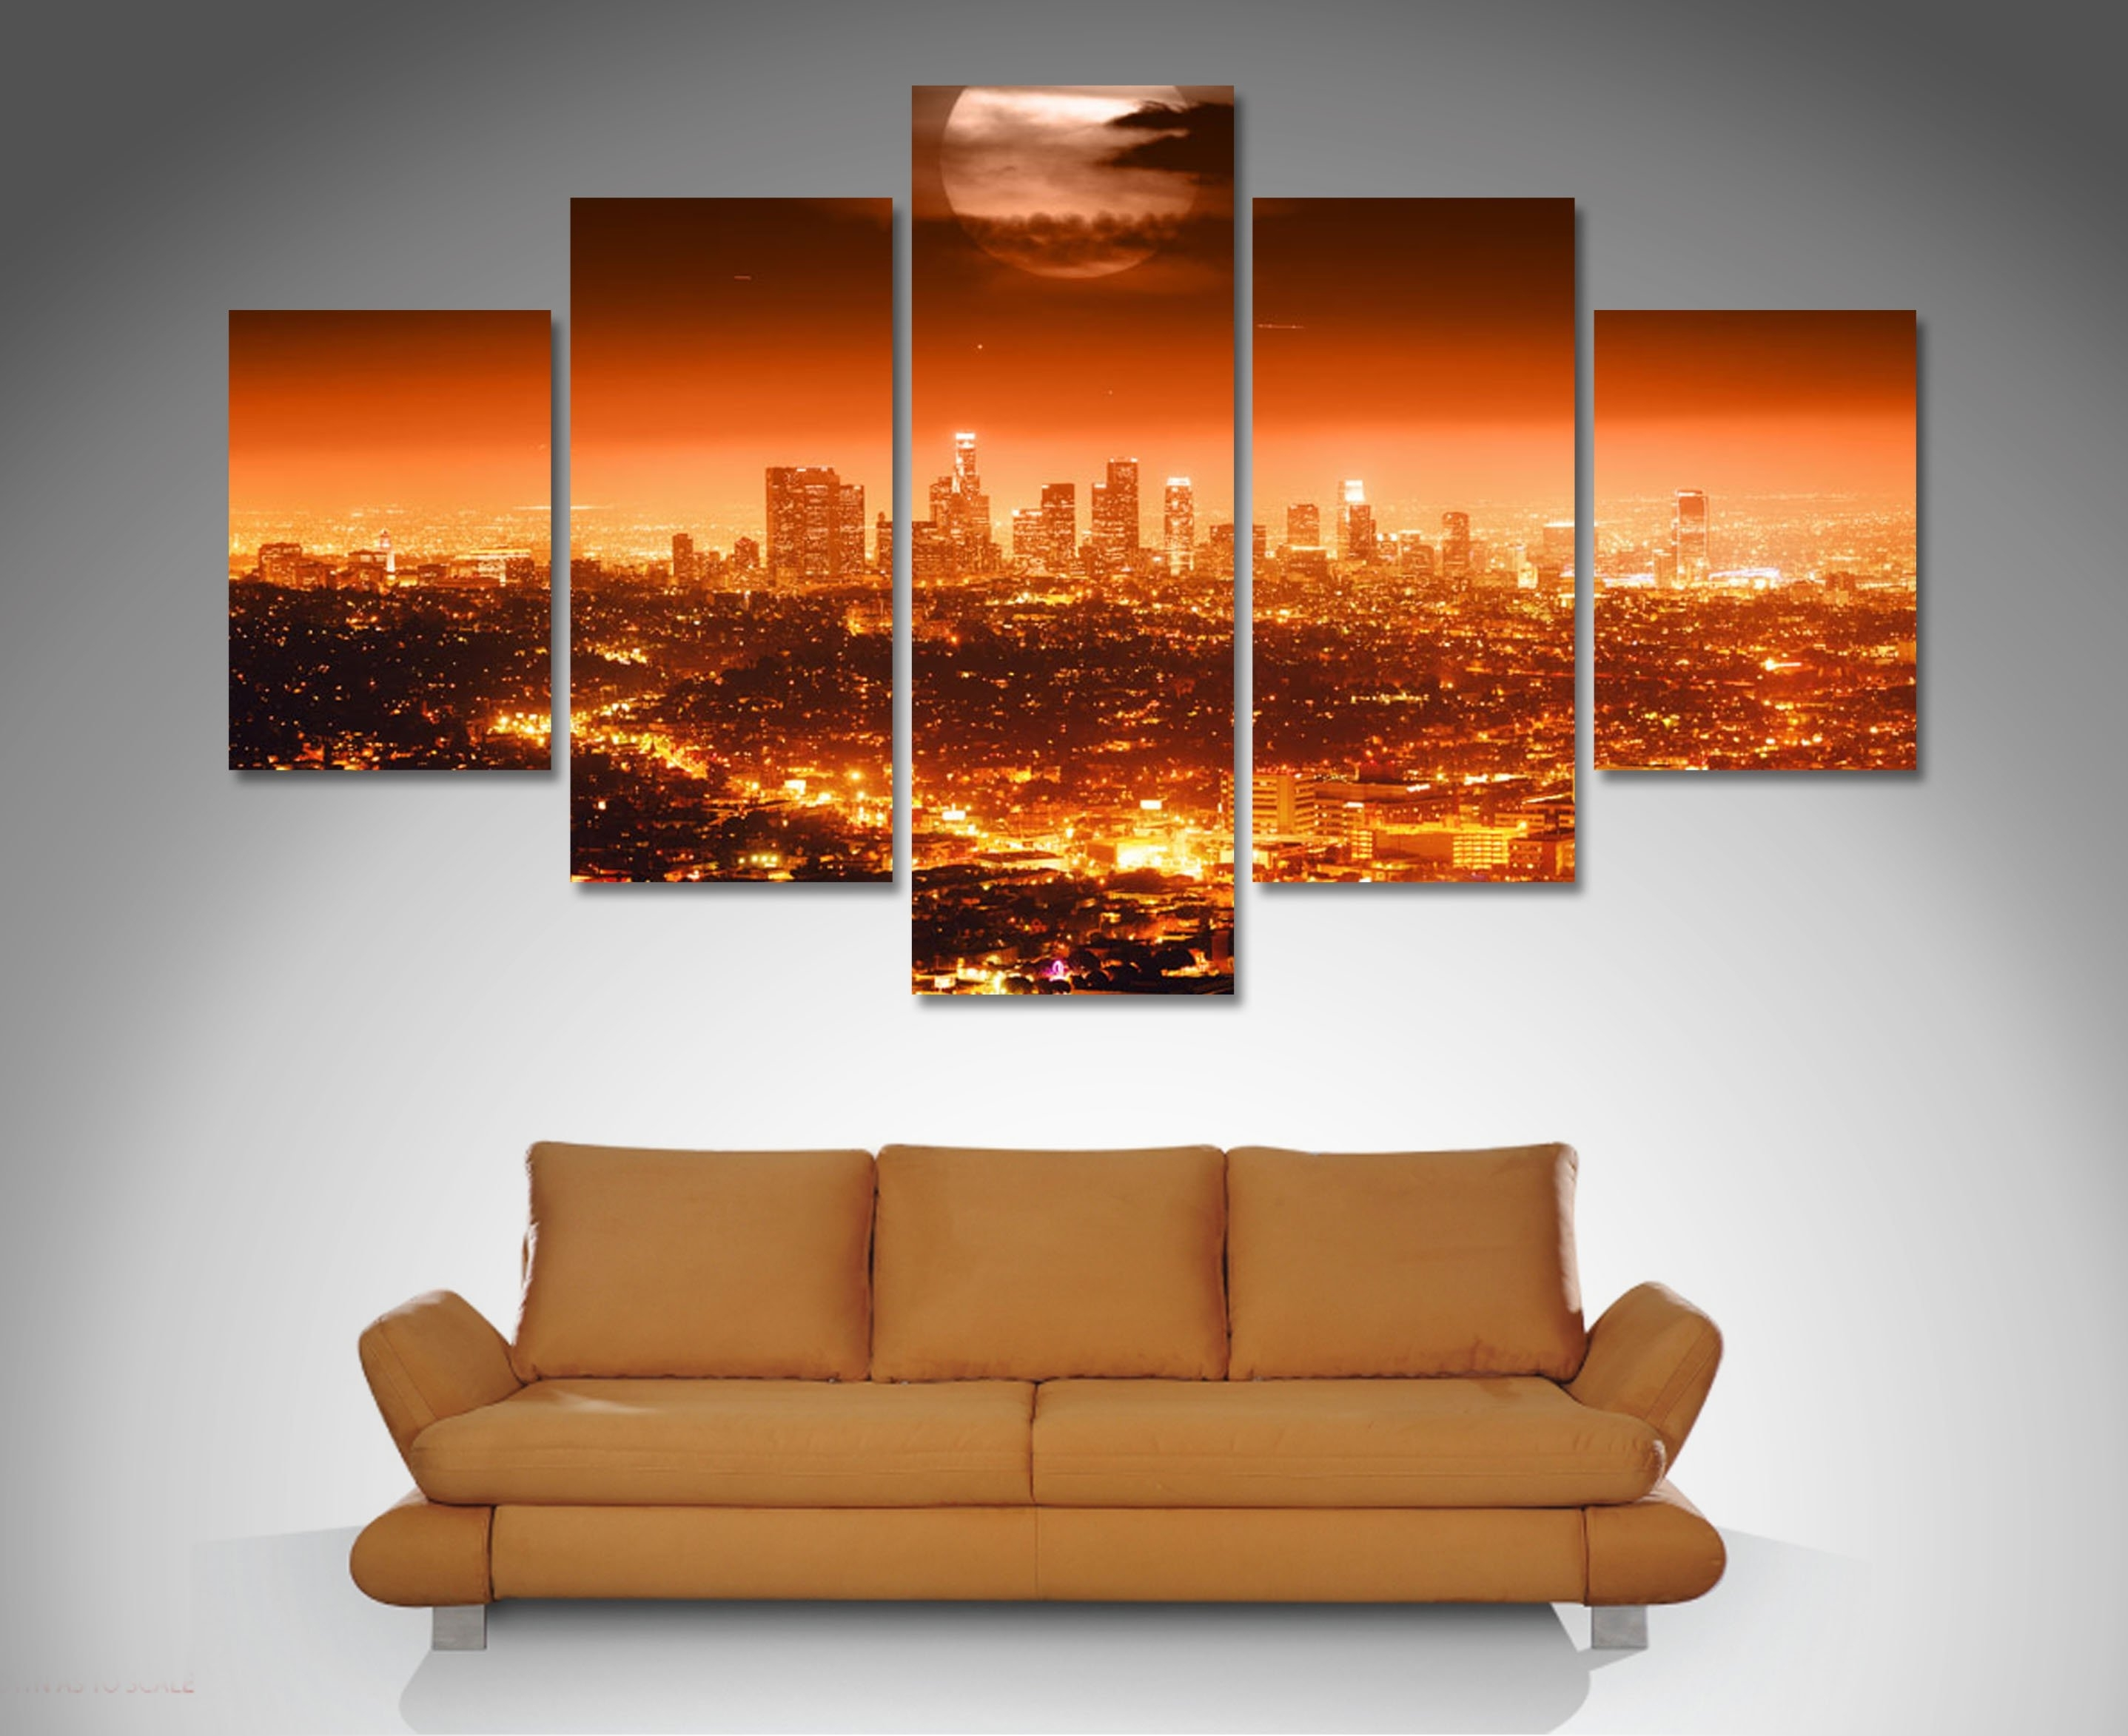 Los Angeles 5 Panel Wall Art Canvas Print With Regard To 5 Panel Wall Art (View 14 of 20)